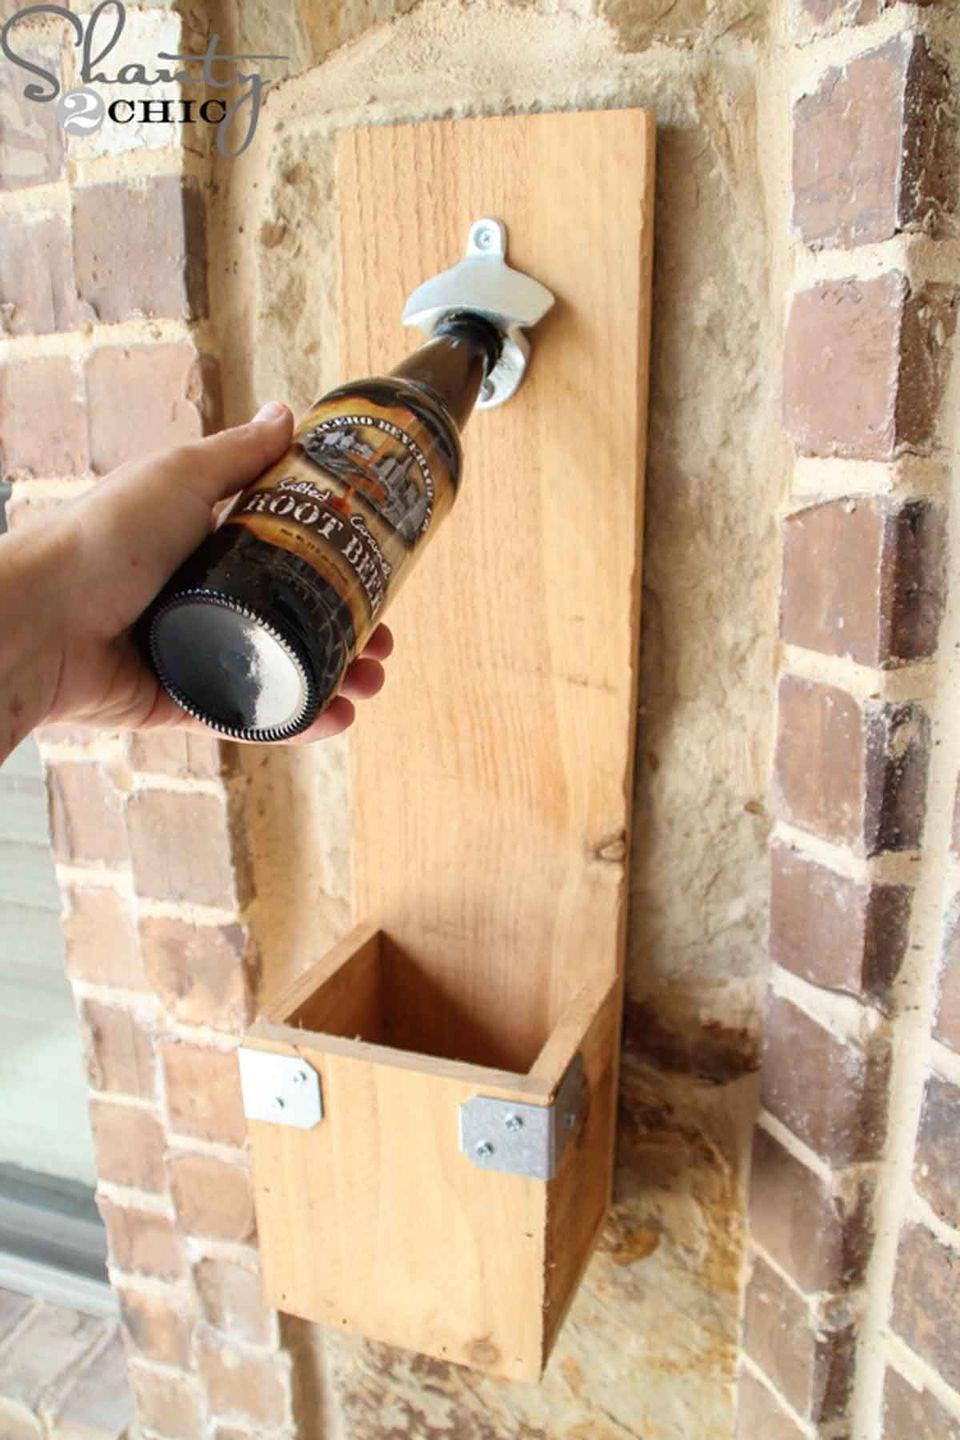 """<p>Assemble this unique and practical bottle opener for dad, which is the perfect addition for any man cave.</p><p><em><strong>Get the tutorial at </strong><a href=""""http://www.shanty-2-chic.com/2014/06/diy-bottle-opener.html"""" rel=""""nofollow noopener"""" target=""""_blank"""" data-ylk=""""slk:Shanty2Chic"""" class=""""link rapid-noclick-resp""""><strong>Shanty2Chic</strong></a><strong>. </strong></em></p>"""